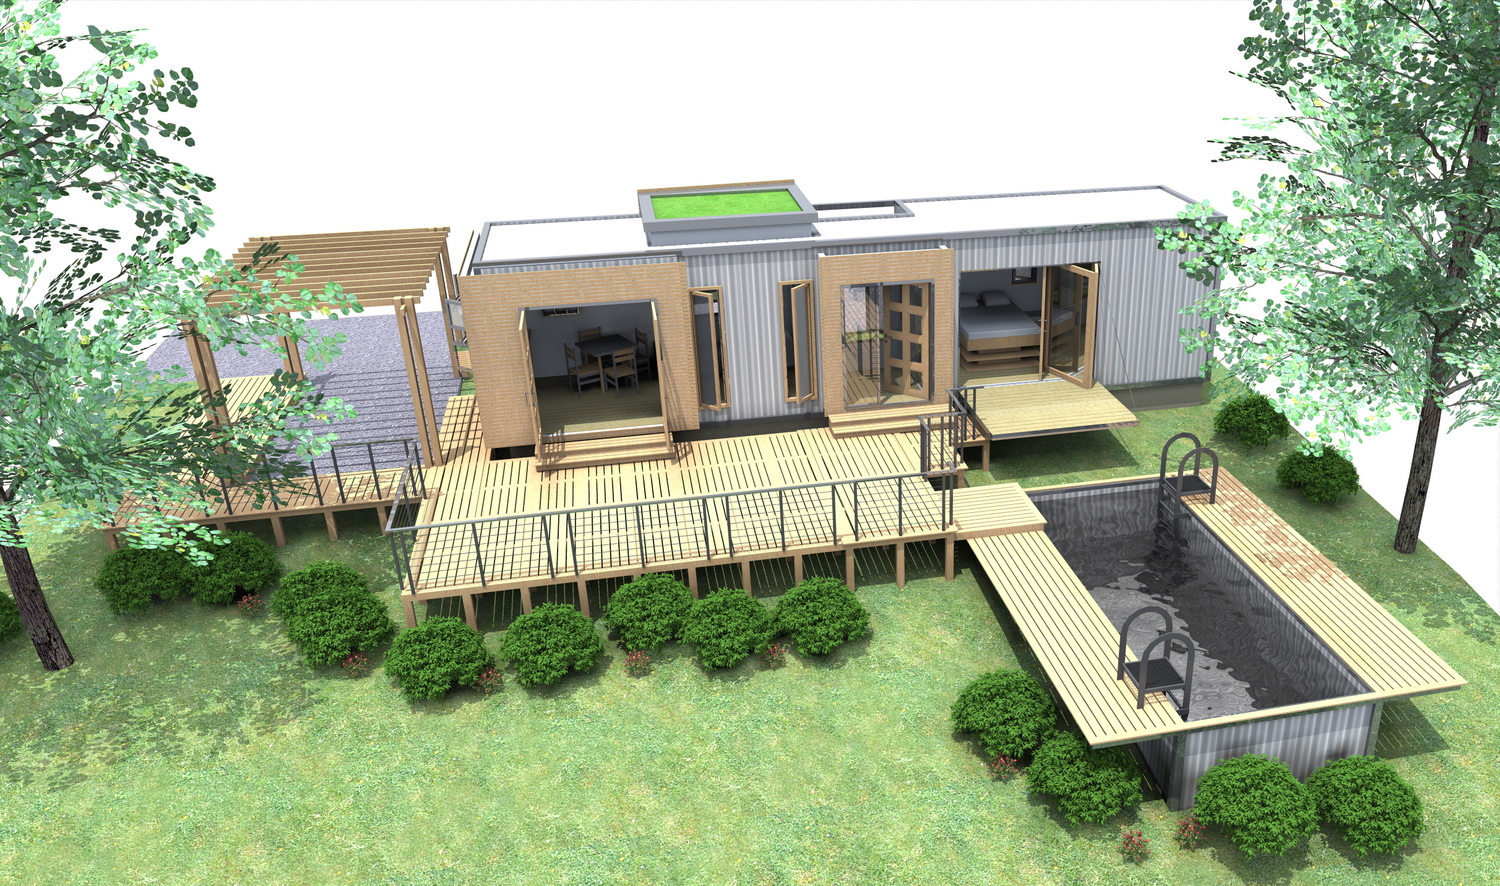 Mobiles home container homes tiny houses container houses pigs design container pools eco - Cargo container homes ...